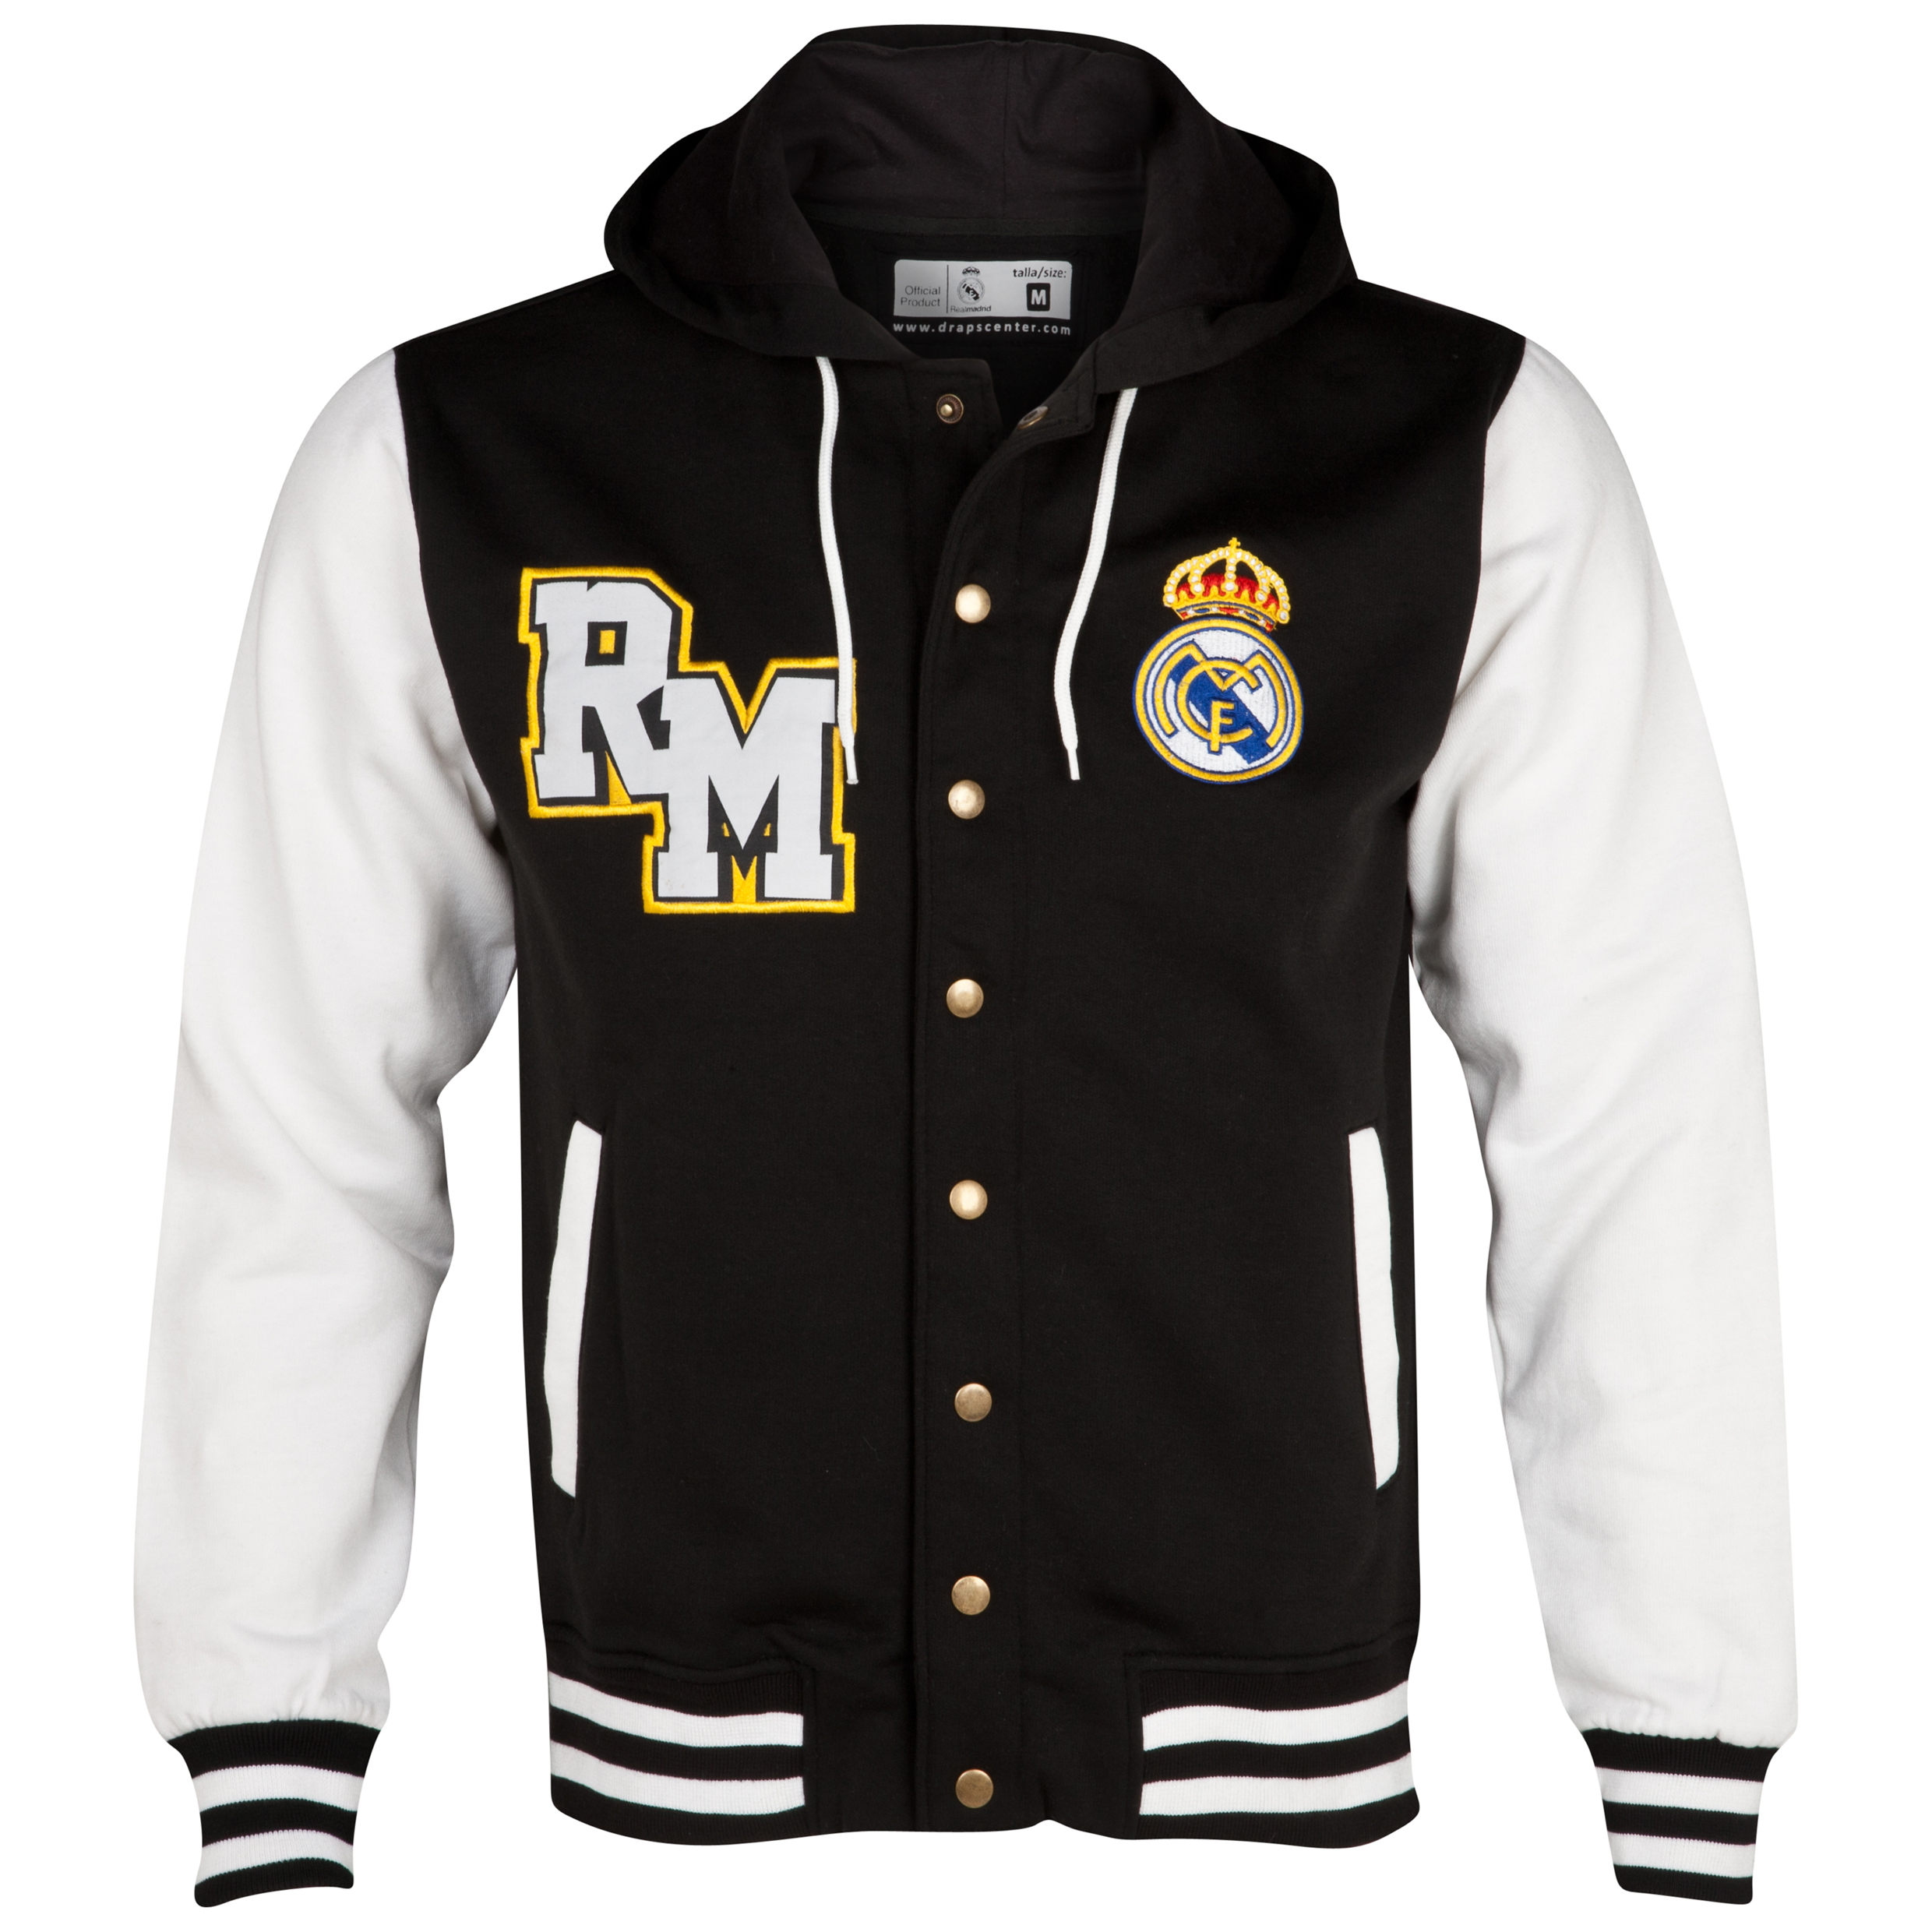 Real Madrid Baseball Jacket - Black/White